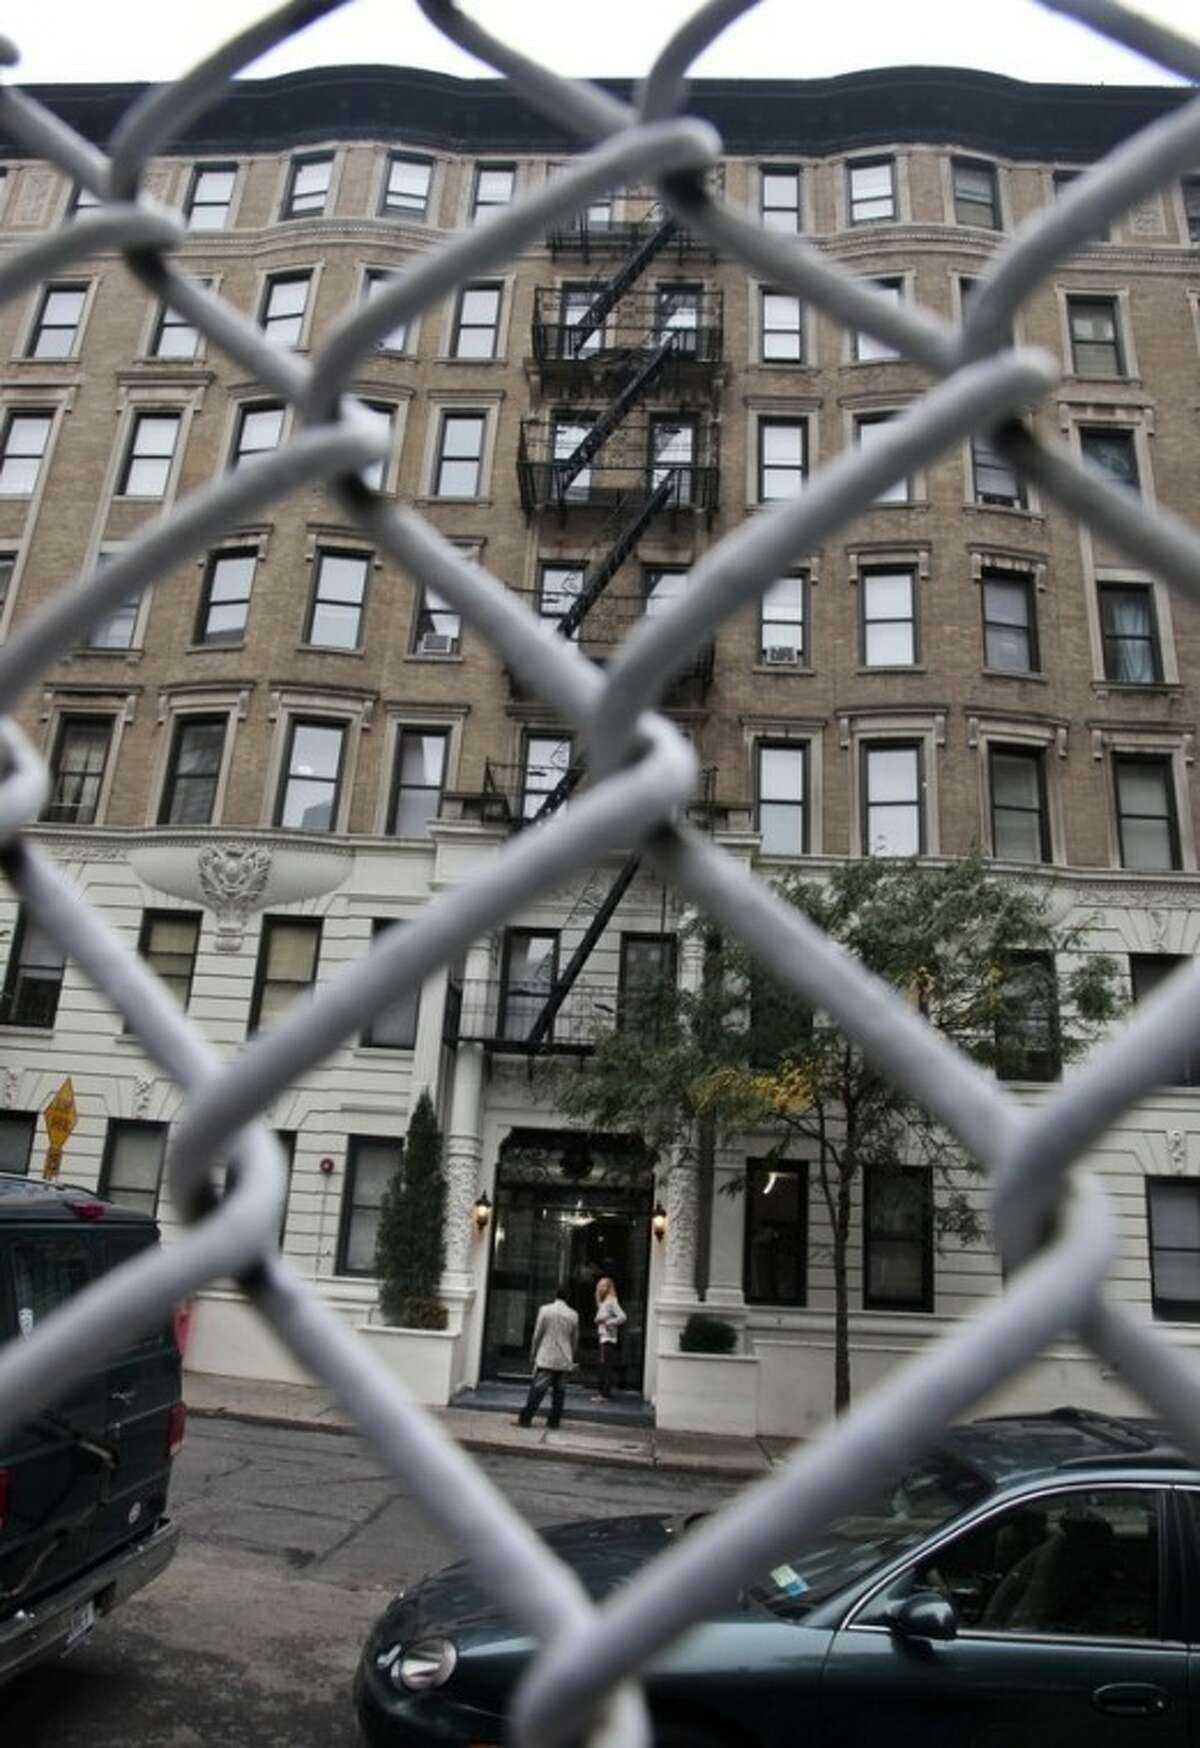 A building serving as an adult shelter of 95th Street is viewed from behind the fenced playground P.S. 75 on Friday, Sept. 28, 2012 in New York. Neighborhood residents are in turmoil, saying they were blindsided by the suddenness of the shelter's opening, sharing the same block as the school. (AP Photo/Bebeto Matthews)